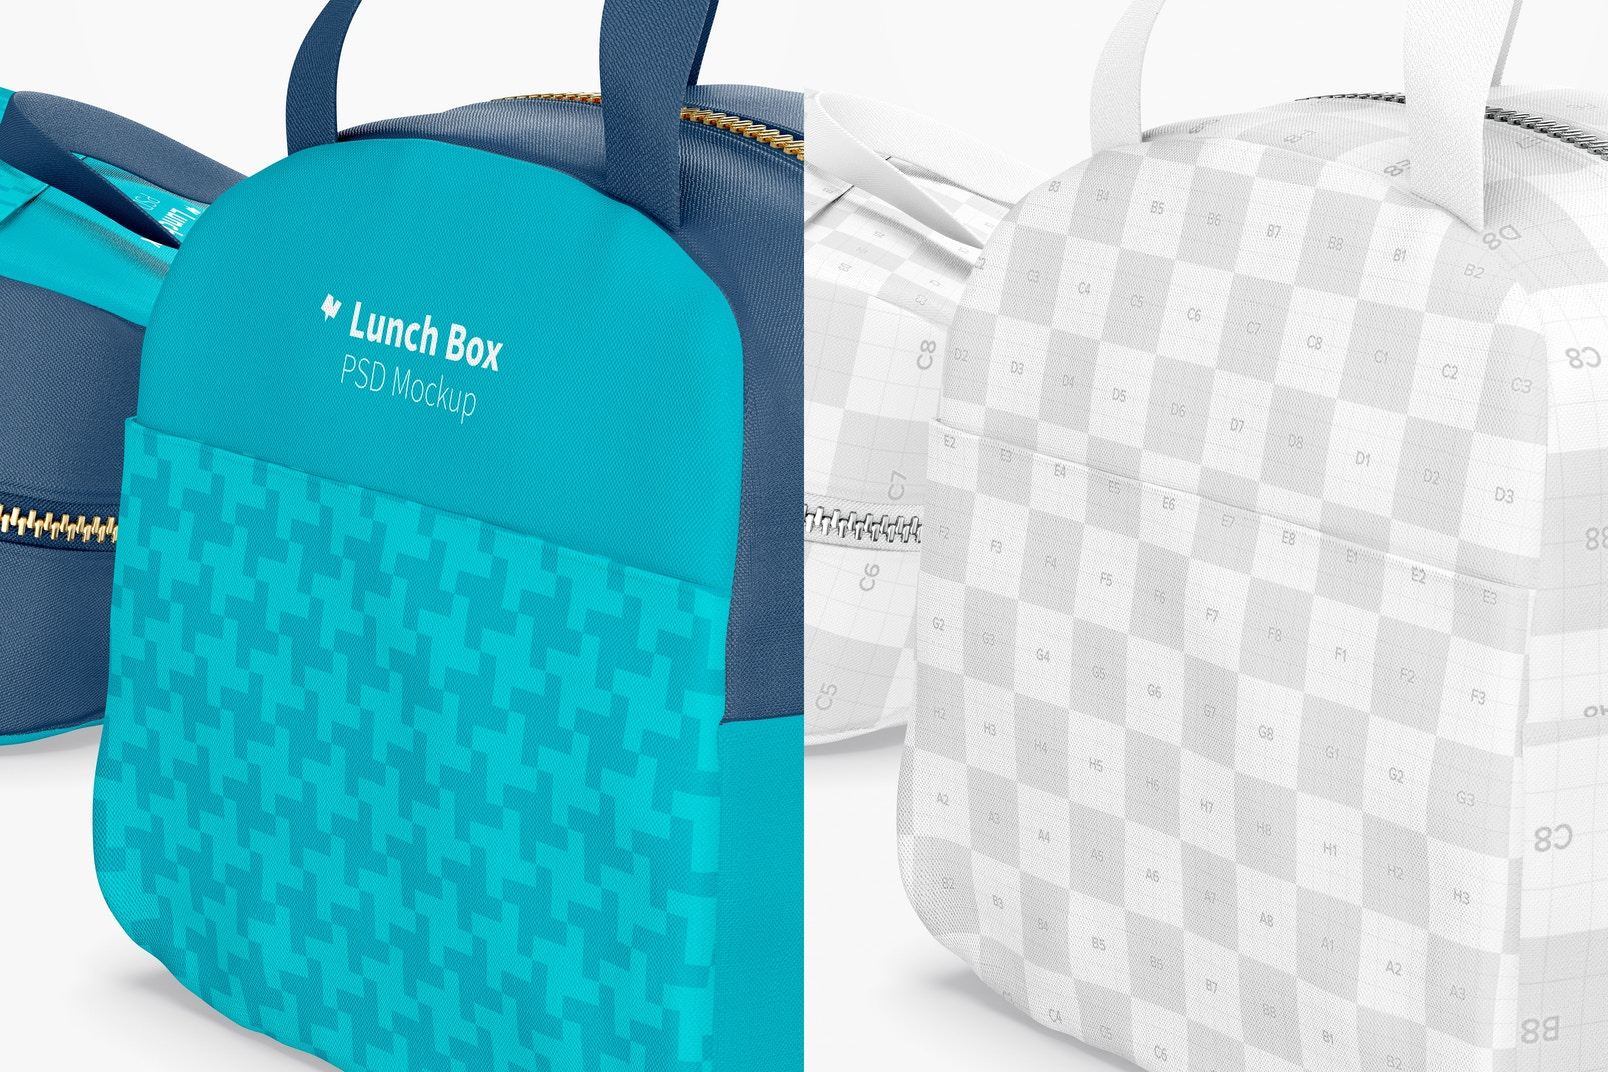 Lunch Bag with Front Pocket Mockup, Close Up